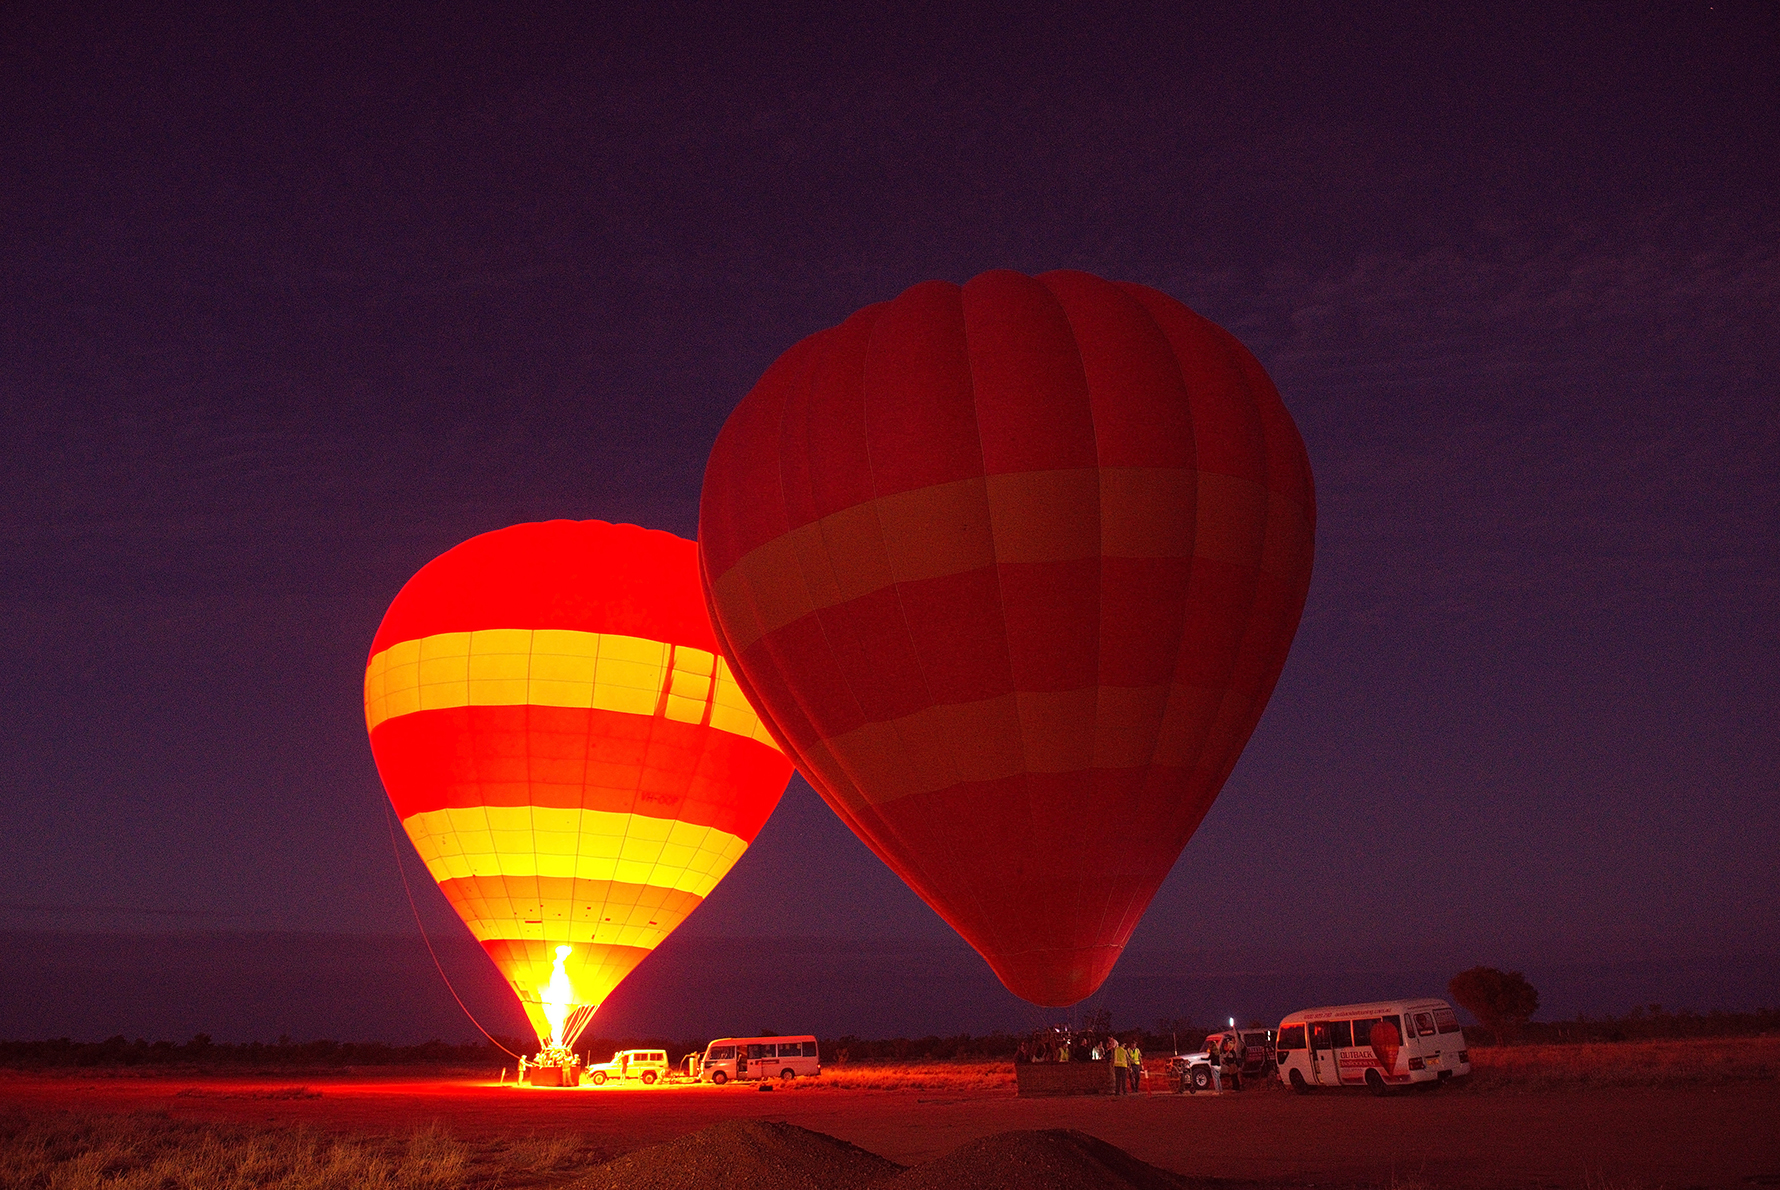 Hot air ballooning in Alice Springs - MC - Tourism NT Hannah Millerick